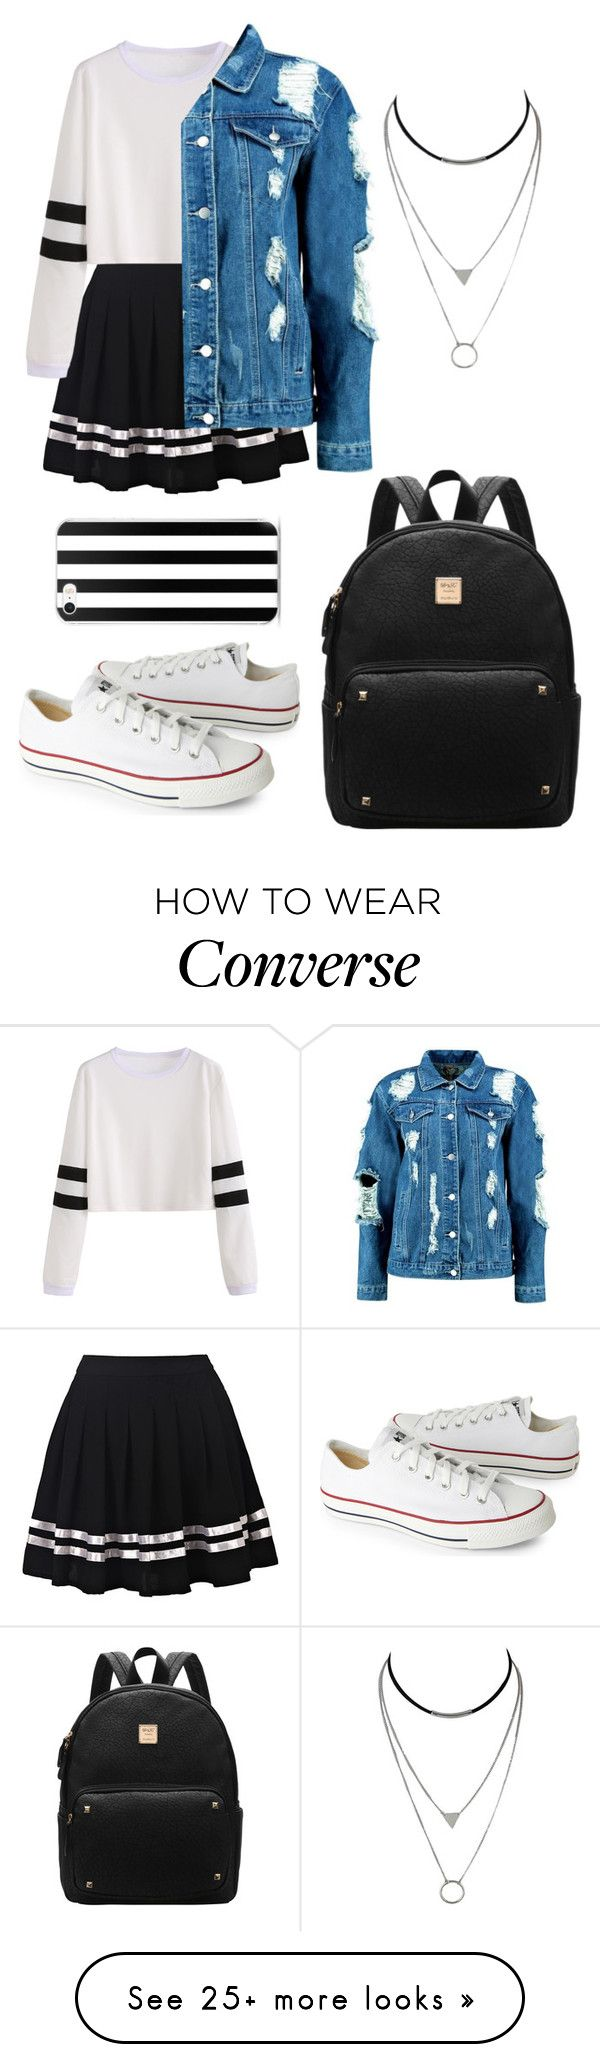 Untitled 860 by samantha1 a on polyvore featuring for Mode bekleidung schule frankfurt